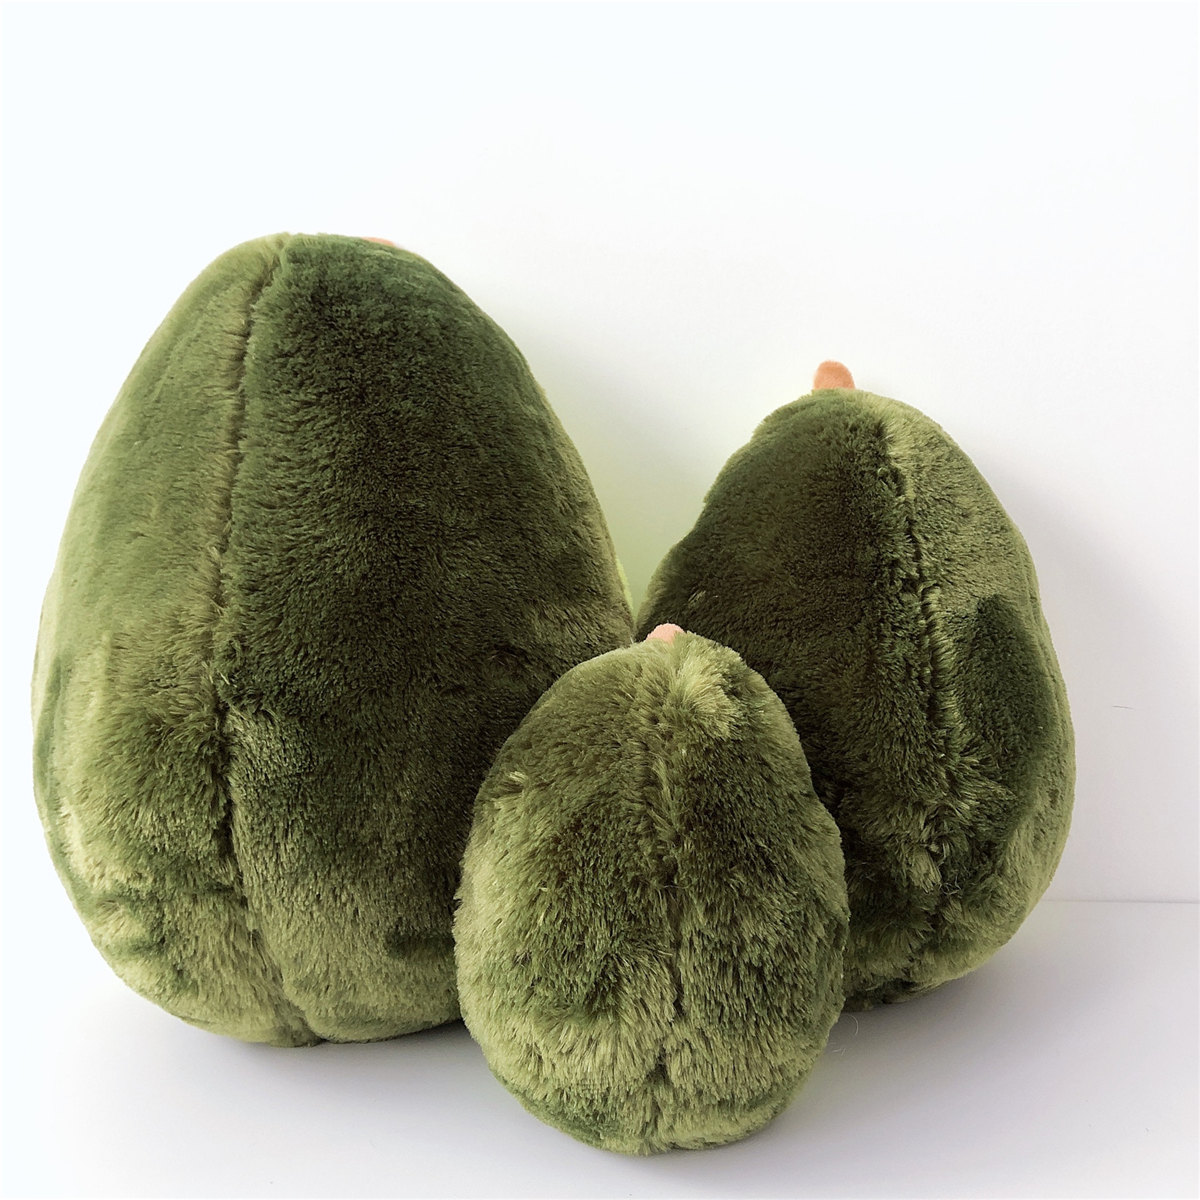 20-60cm Cute Avocado Fruit Plush Toy Cartoon Soft Stuffed Doll Boy Girl Pillow Christmas Birthday Gift